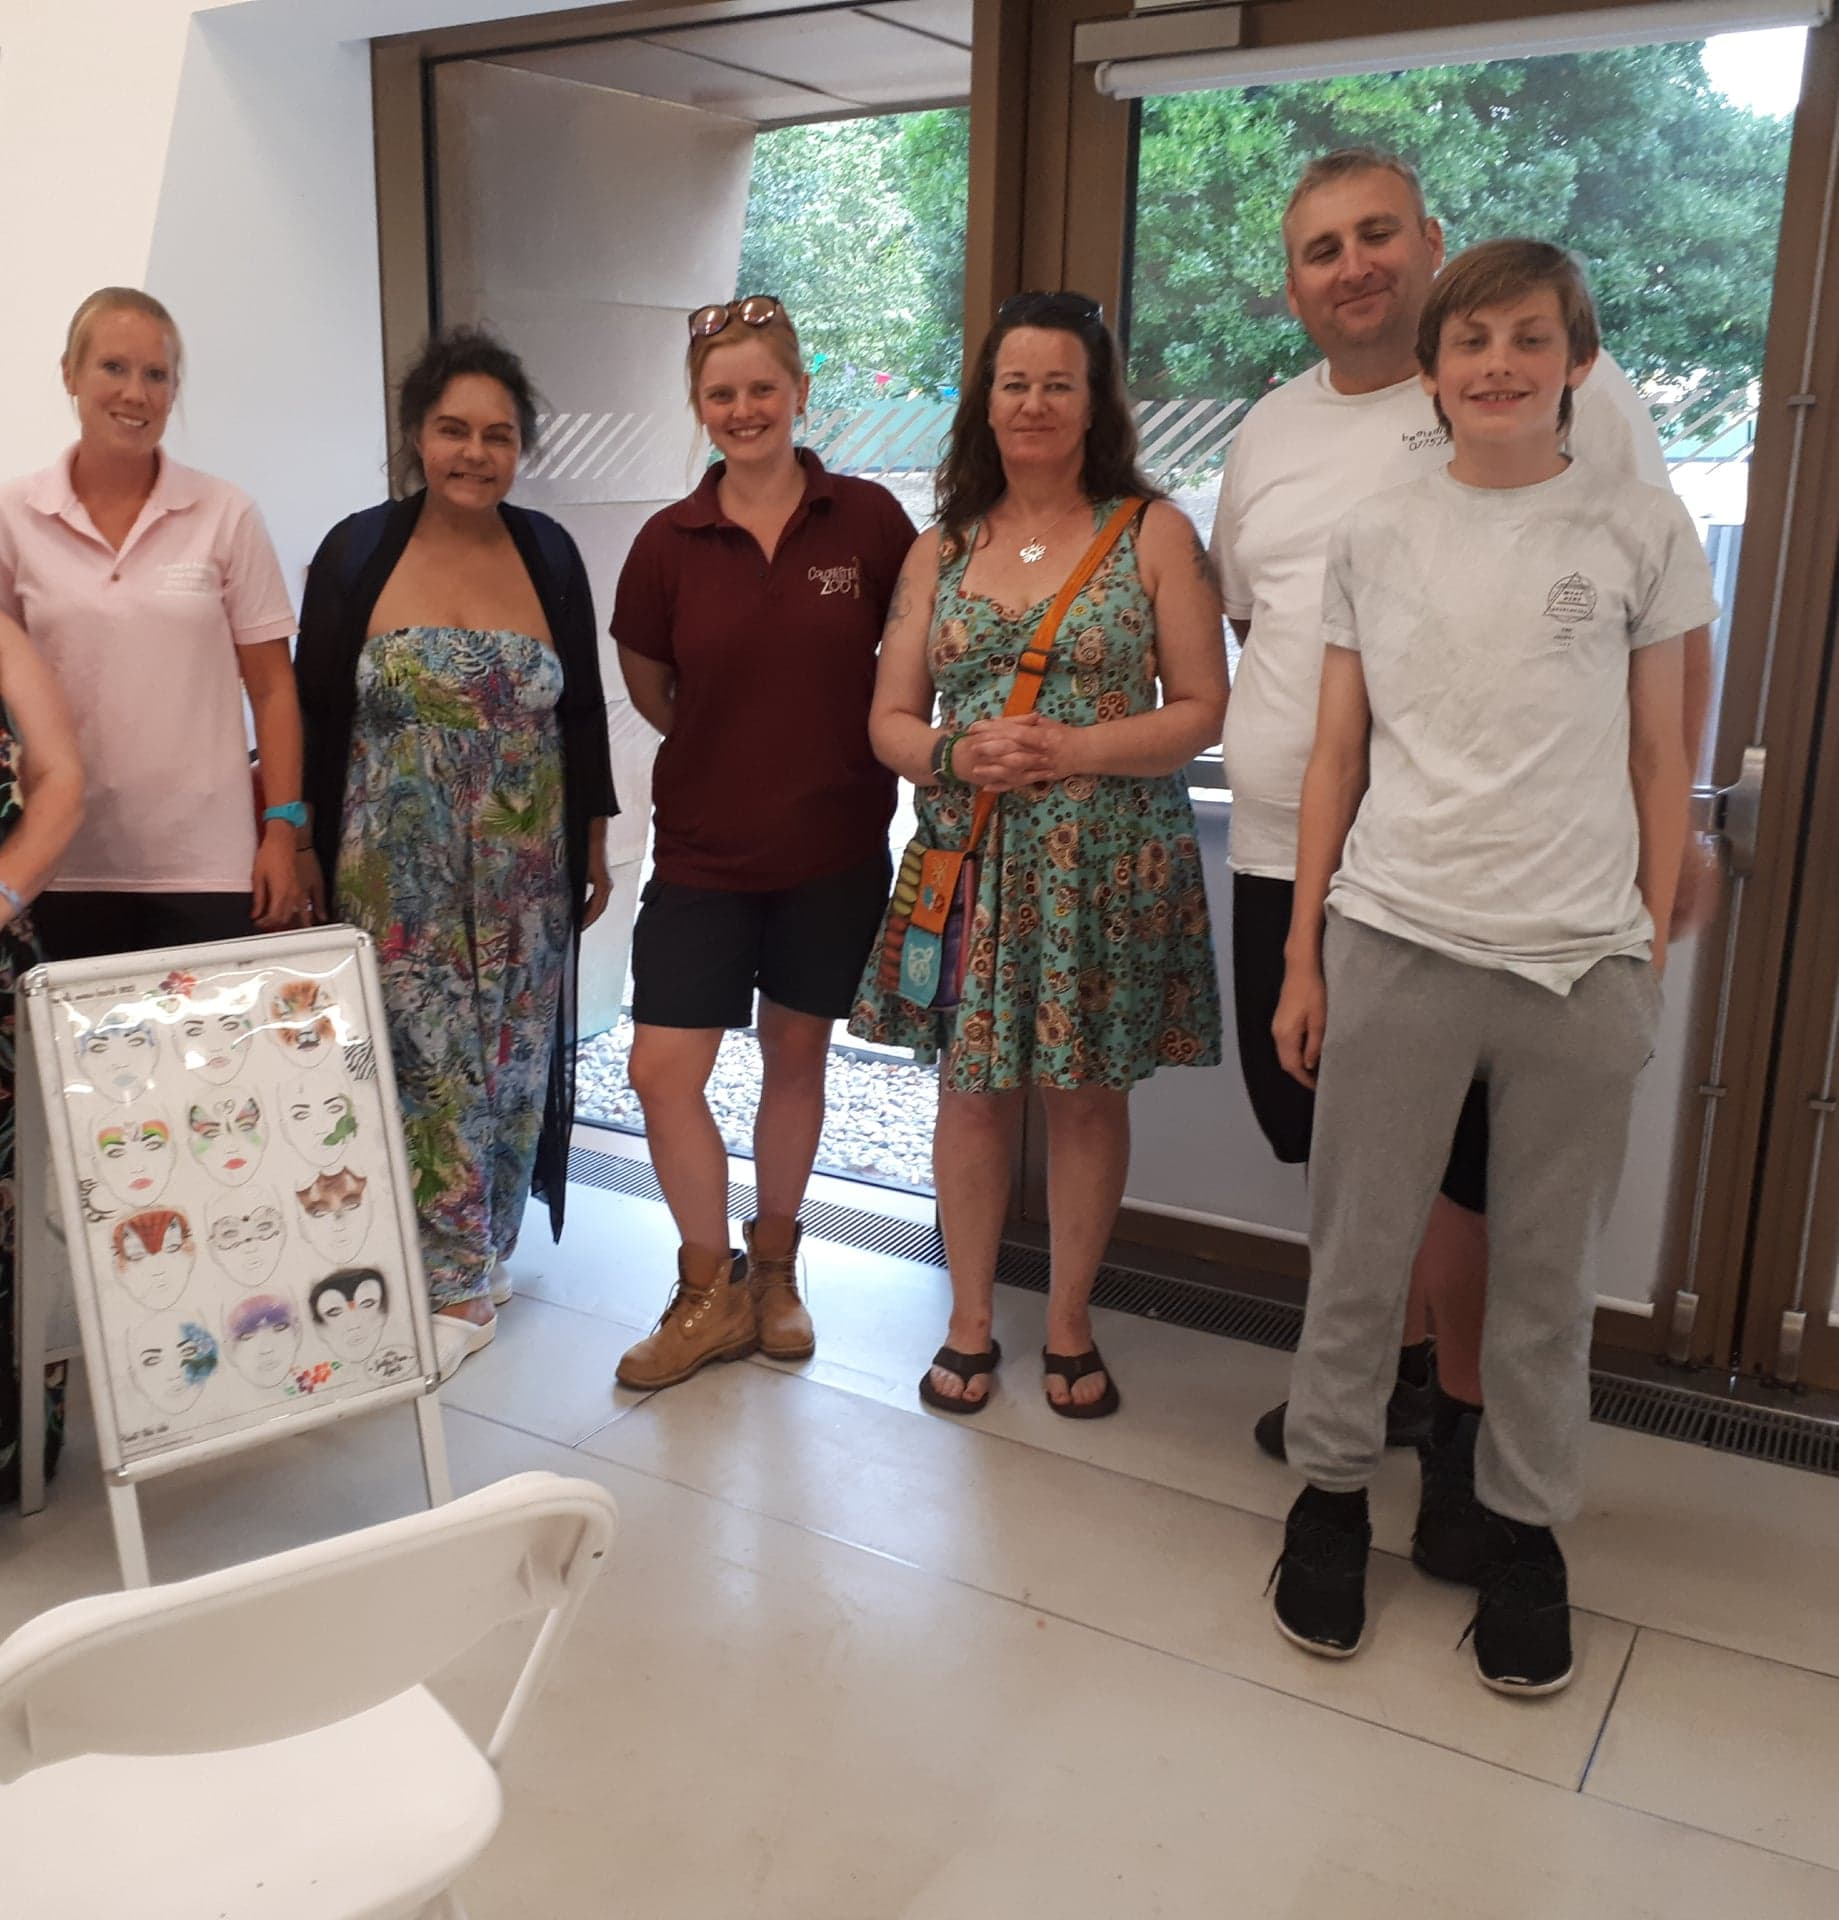 OWAP AR CHARITY EVENT FUNDRAISER 20 JULY 2018 WITH VIGGO SIMON KATIE PERFECT OF COLCHESTER ZOO AND FACE PAINTER ARTIST  WITH KIM.jpg